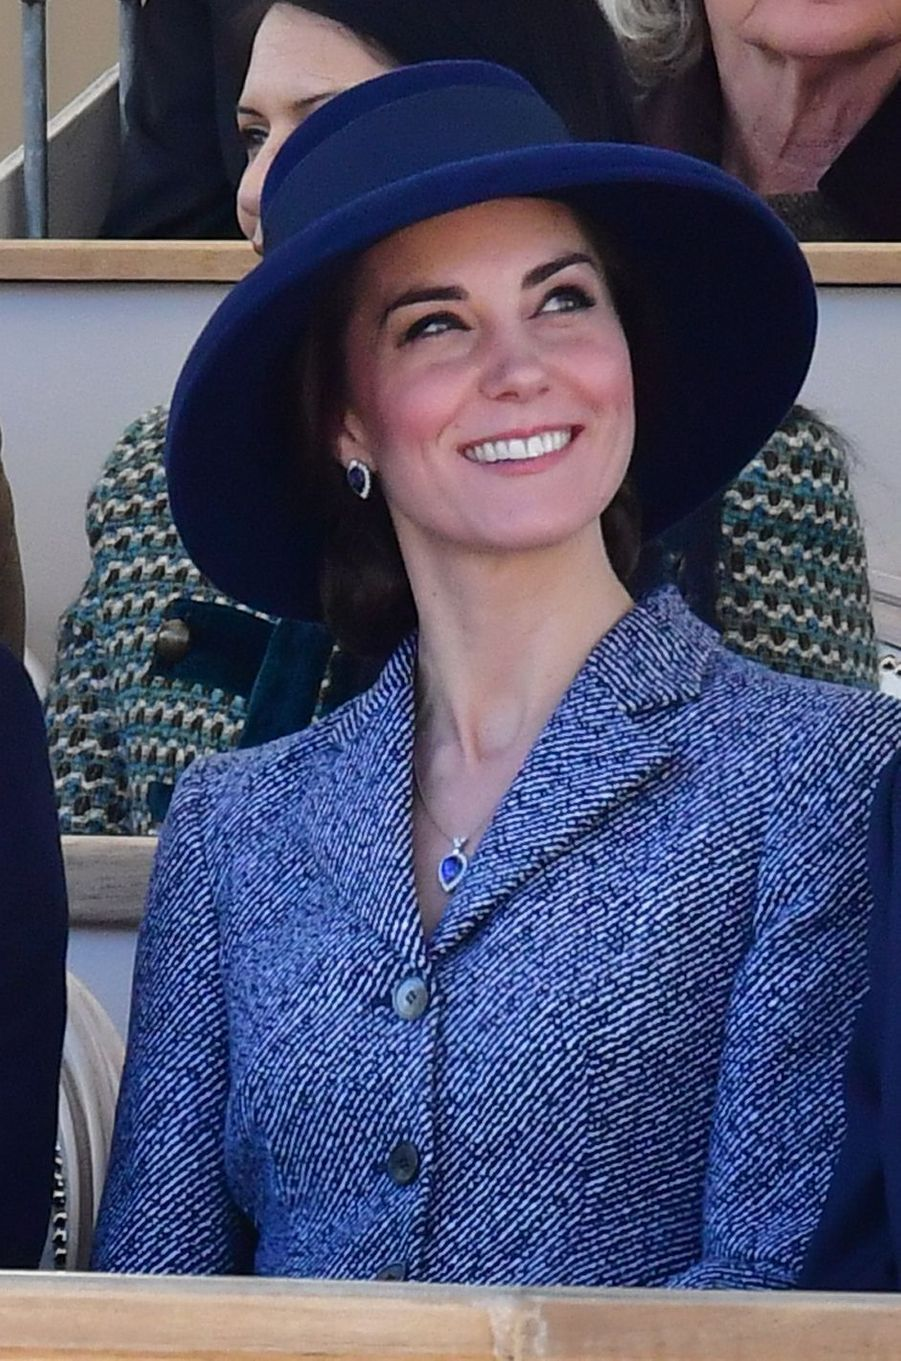 La duchesse de Cambridge, née Kate Middleton, à Londres le 9 février 2017